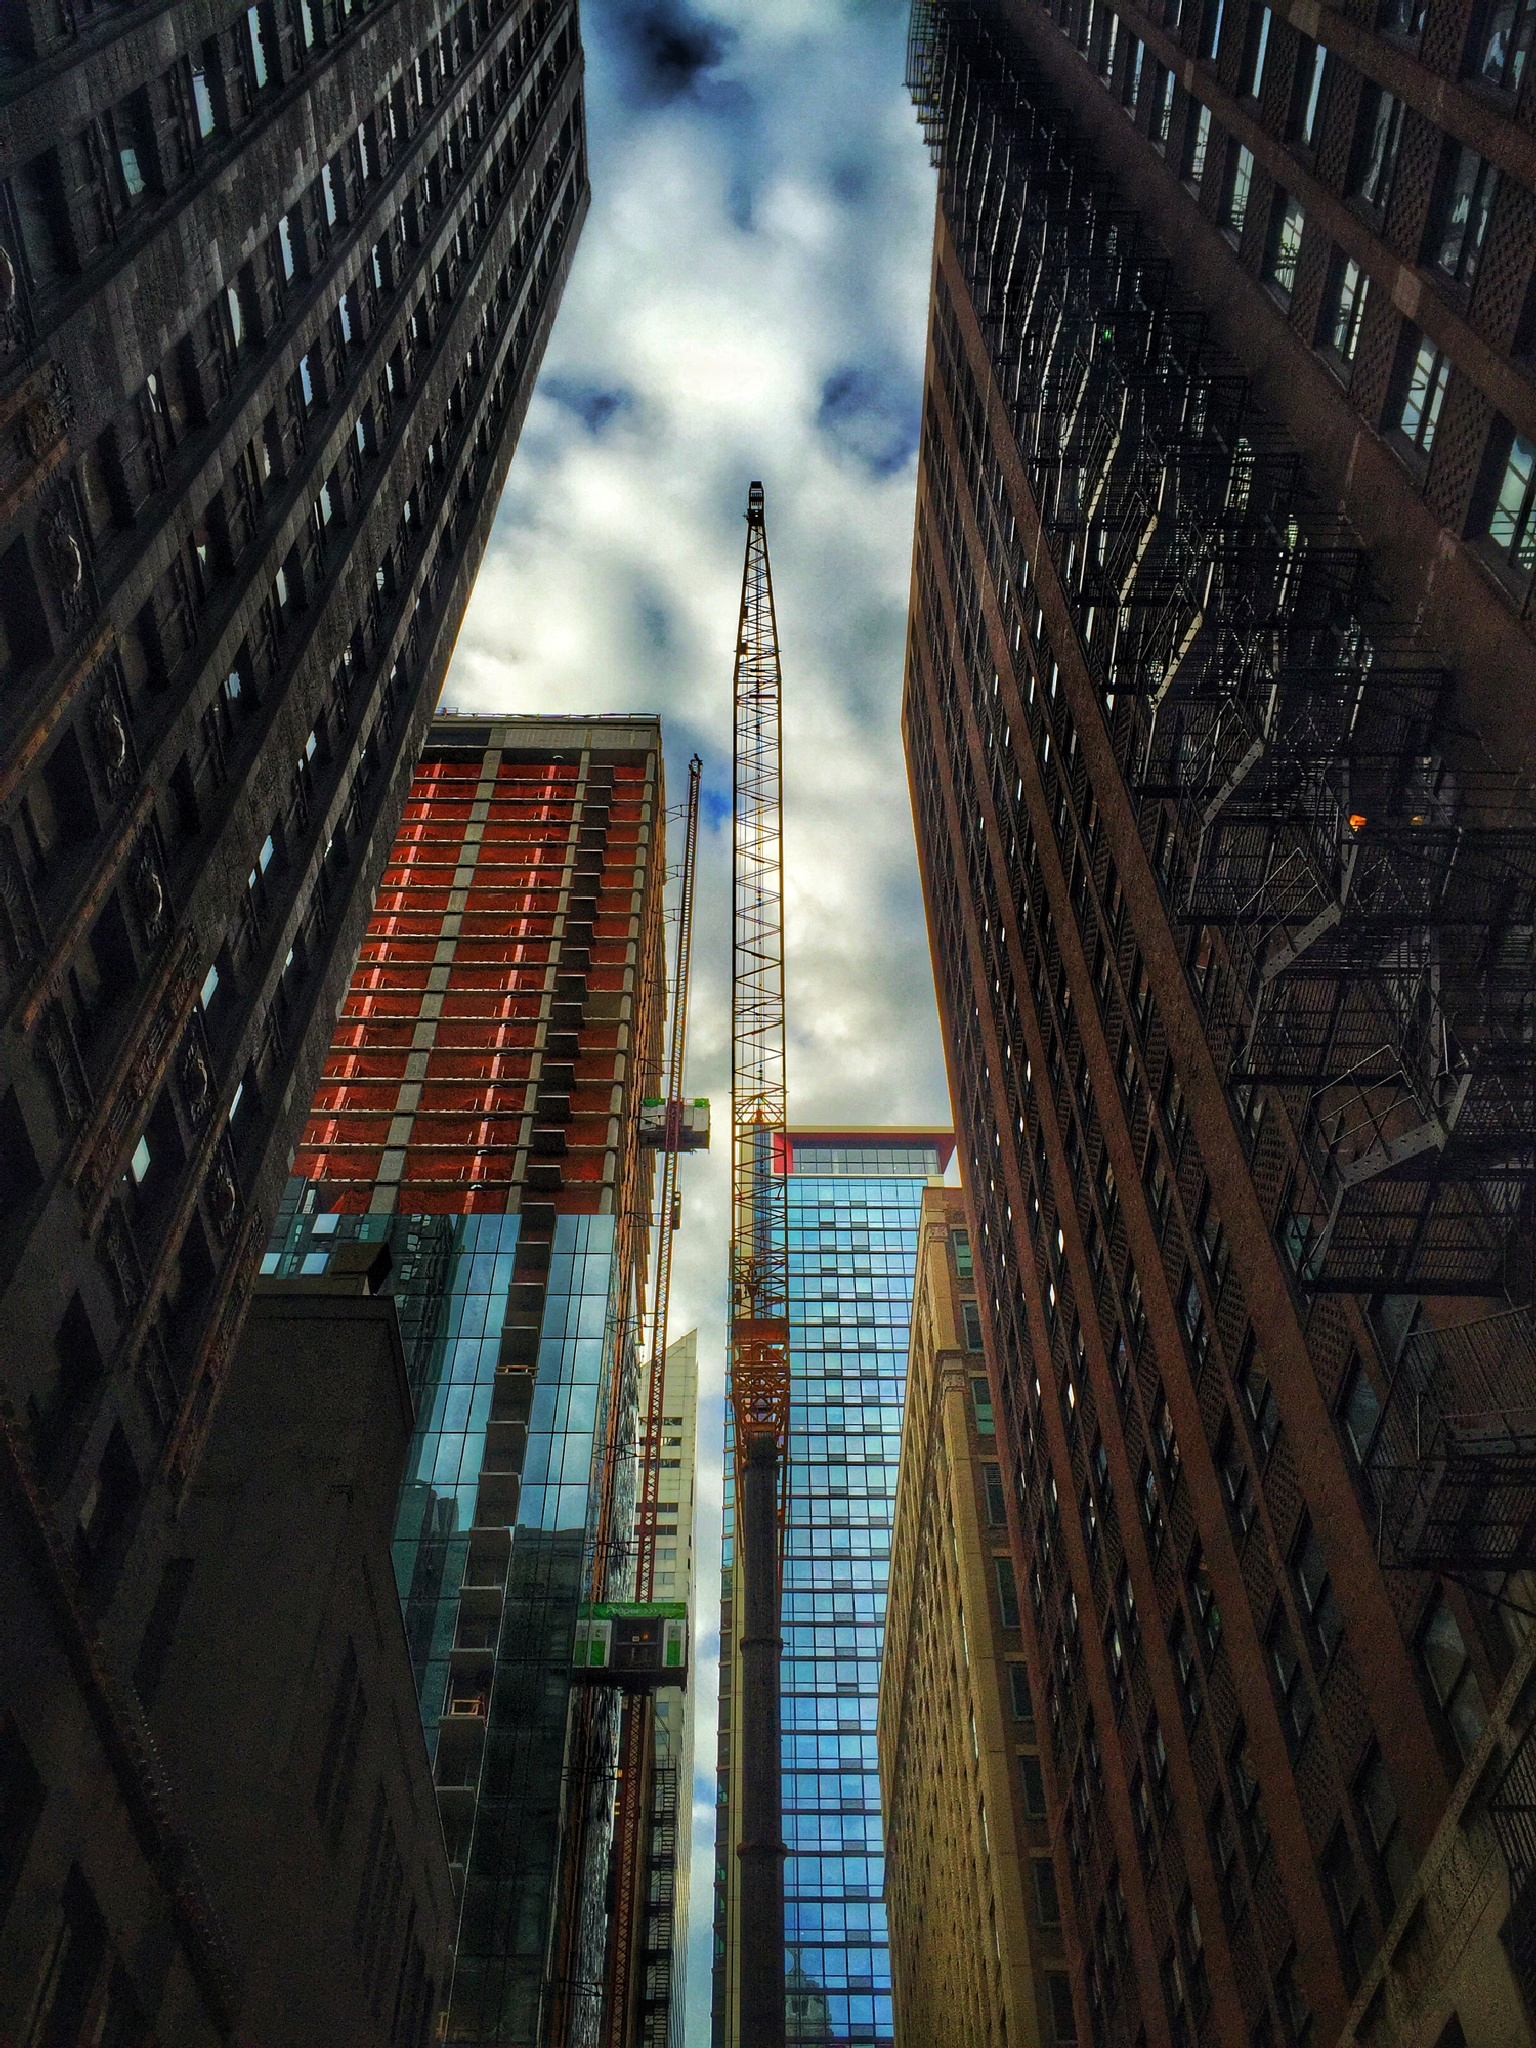 The Rise of a Building  by rickferris